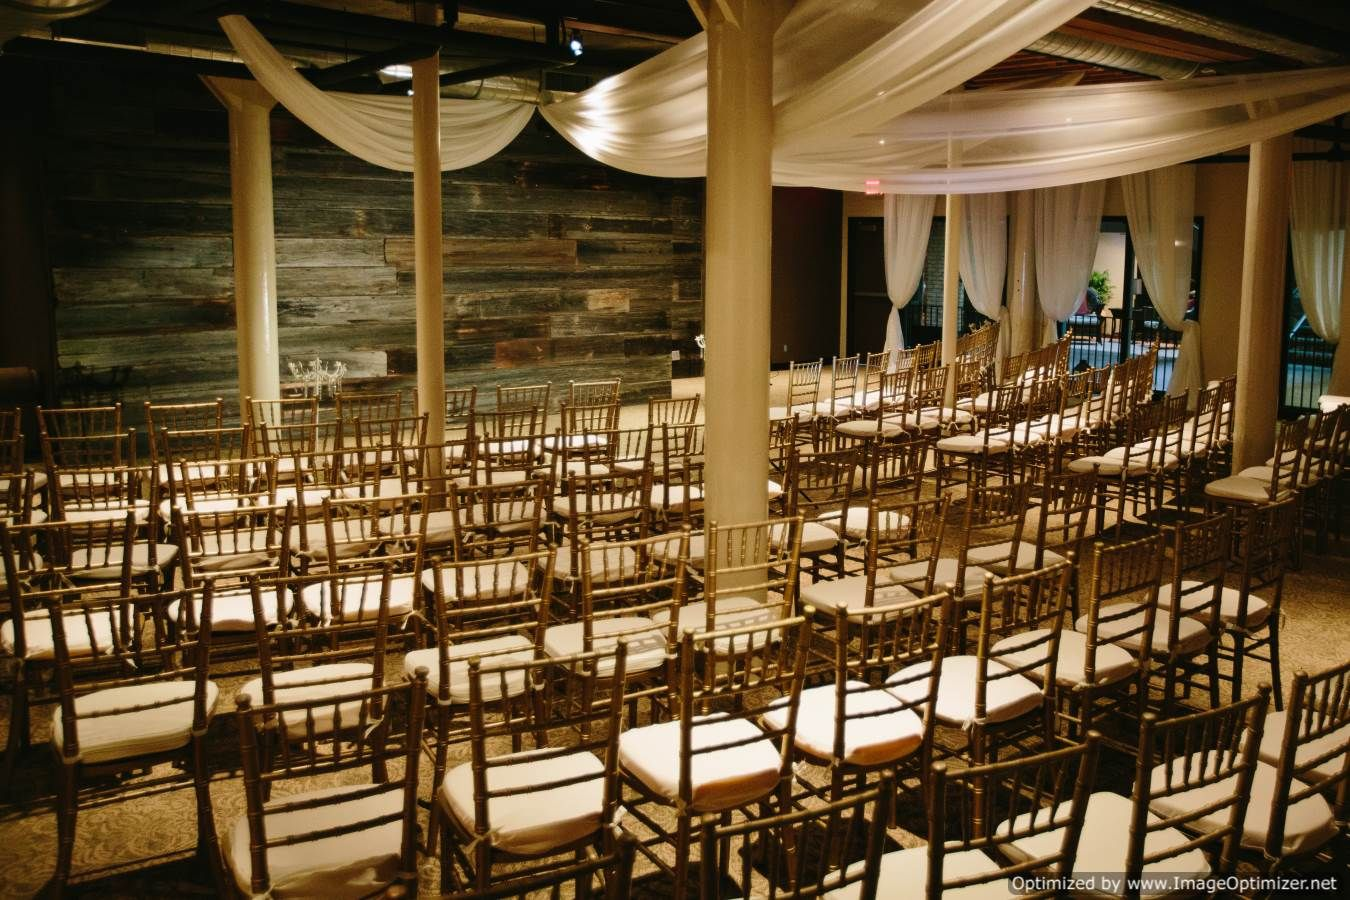 ceremony space with wooden wall backdrop and chairs